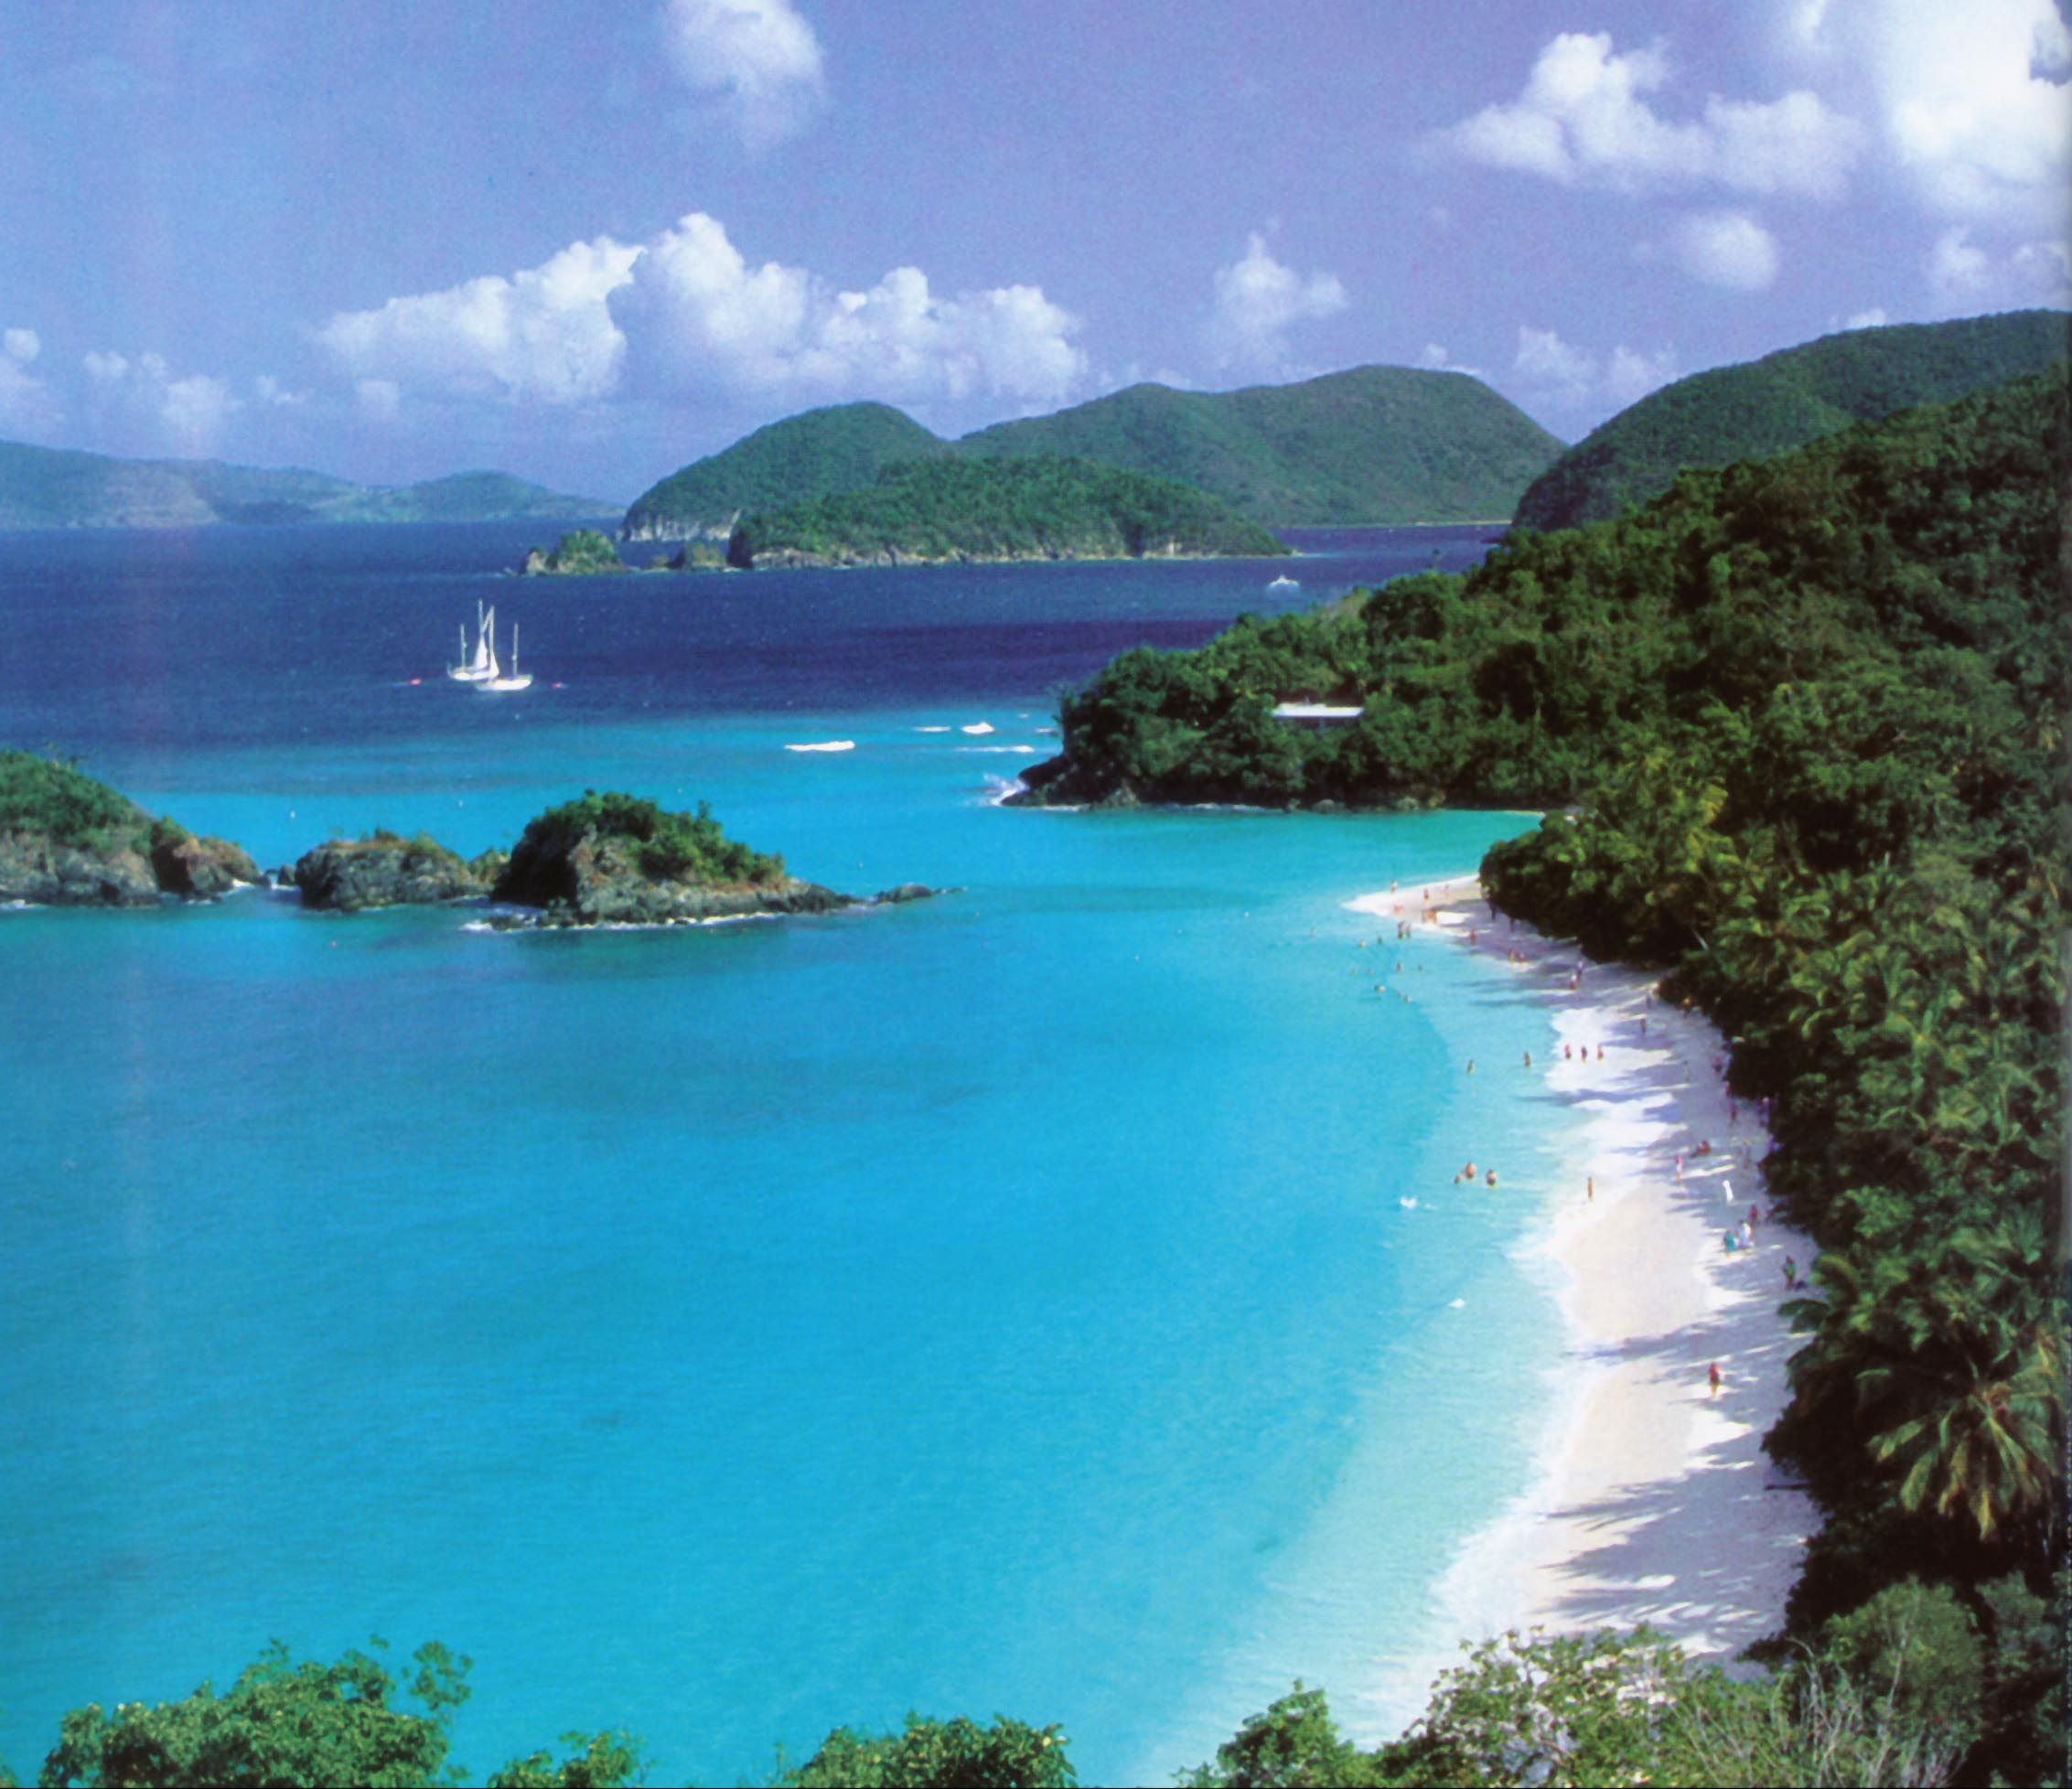 saint thomas island future